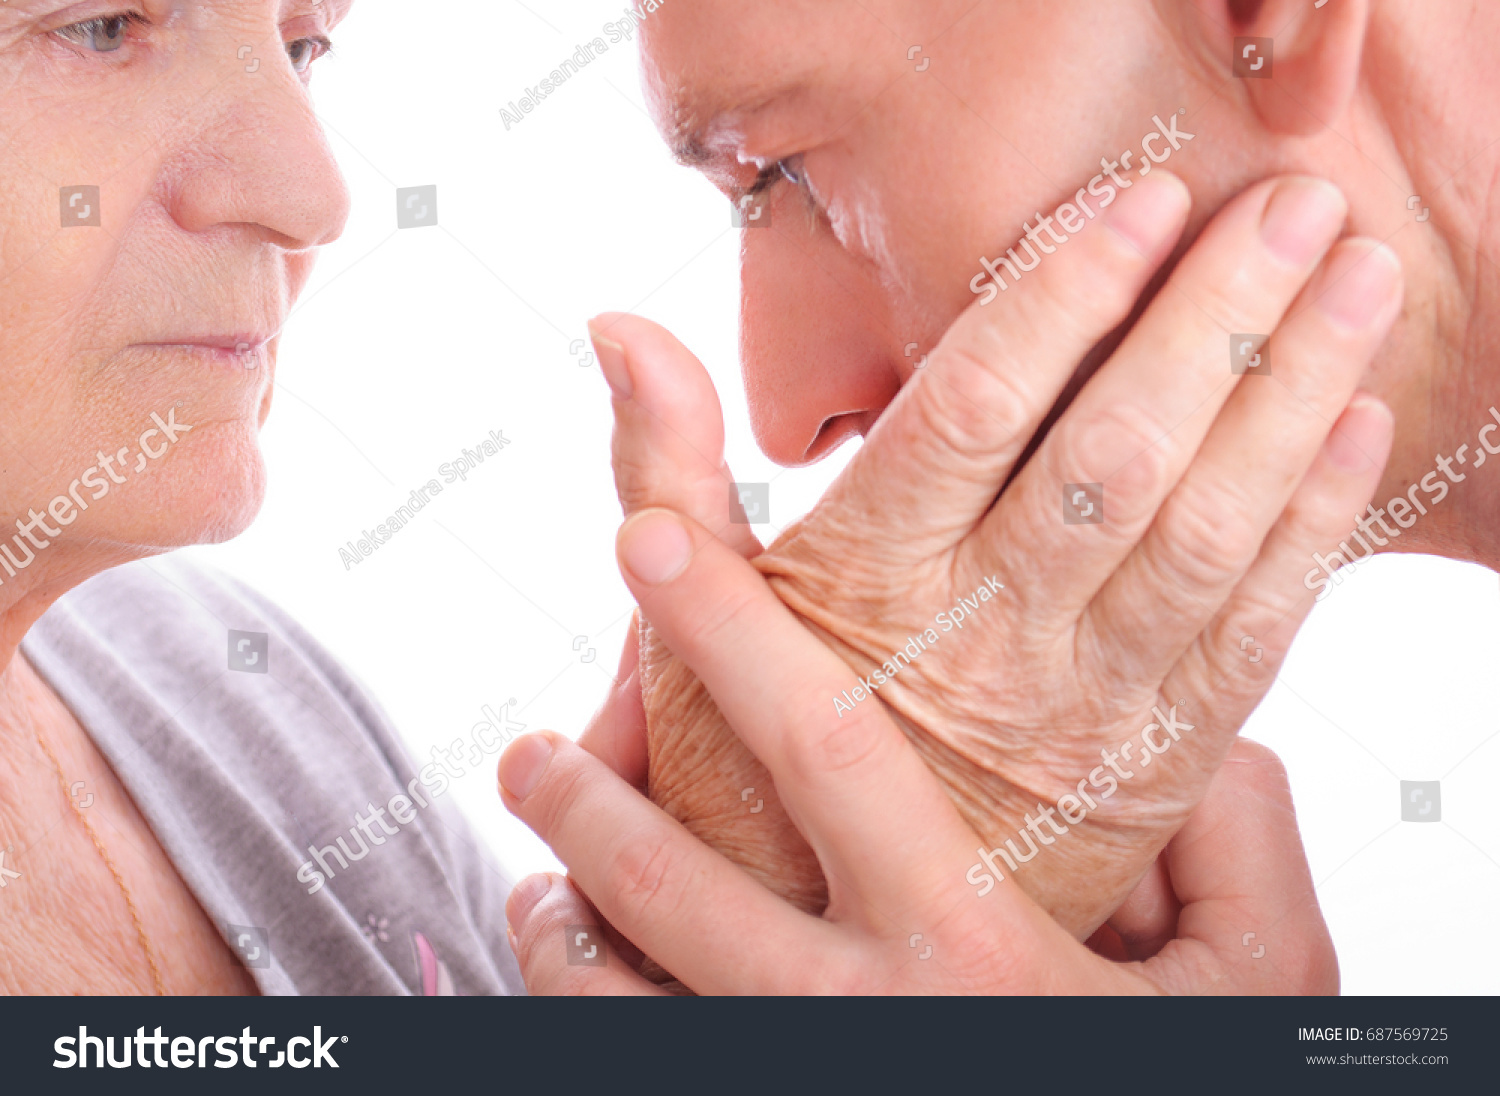 Close up image of hands. Adult son holding his aged mother hands. Concept: